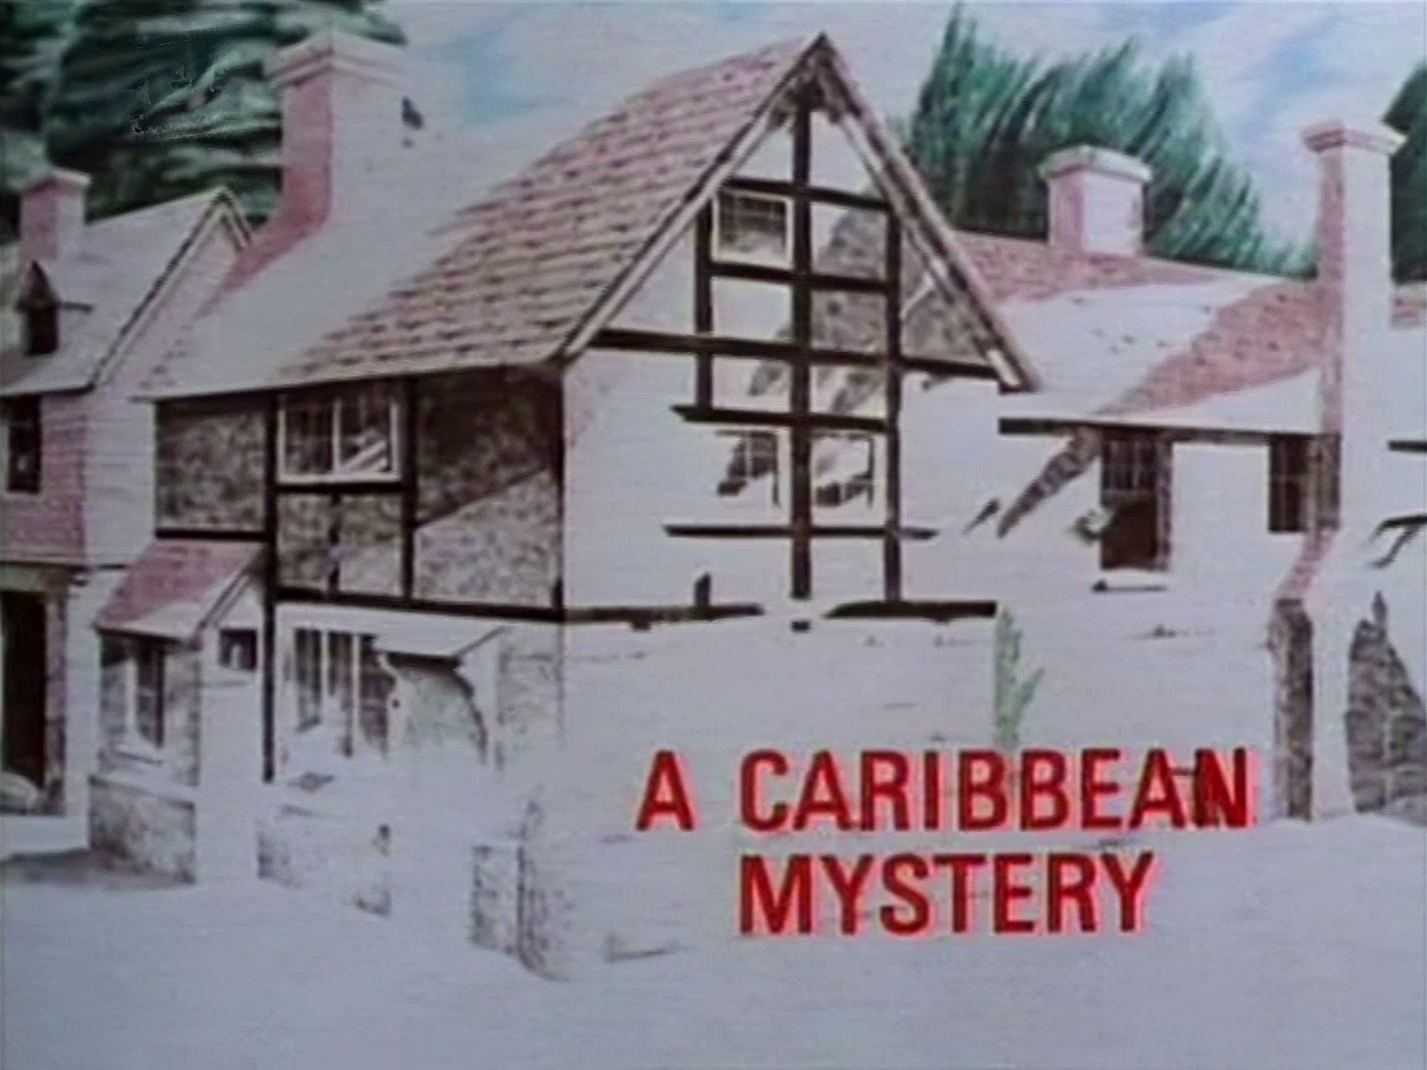 Main title from the 1989 'A Caribbean Mystery' episode of Agatha Christie's Miss Marple (1984-1992) (1)